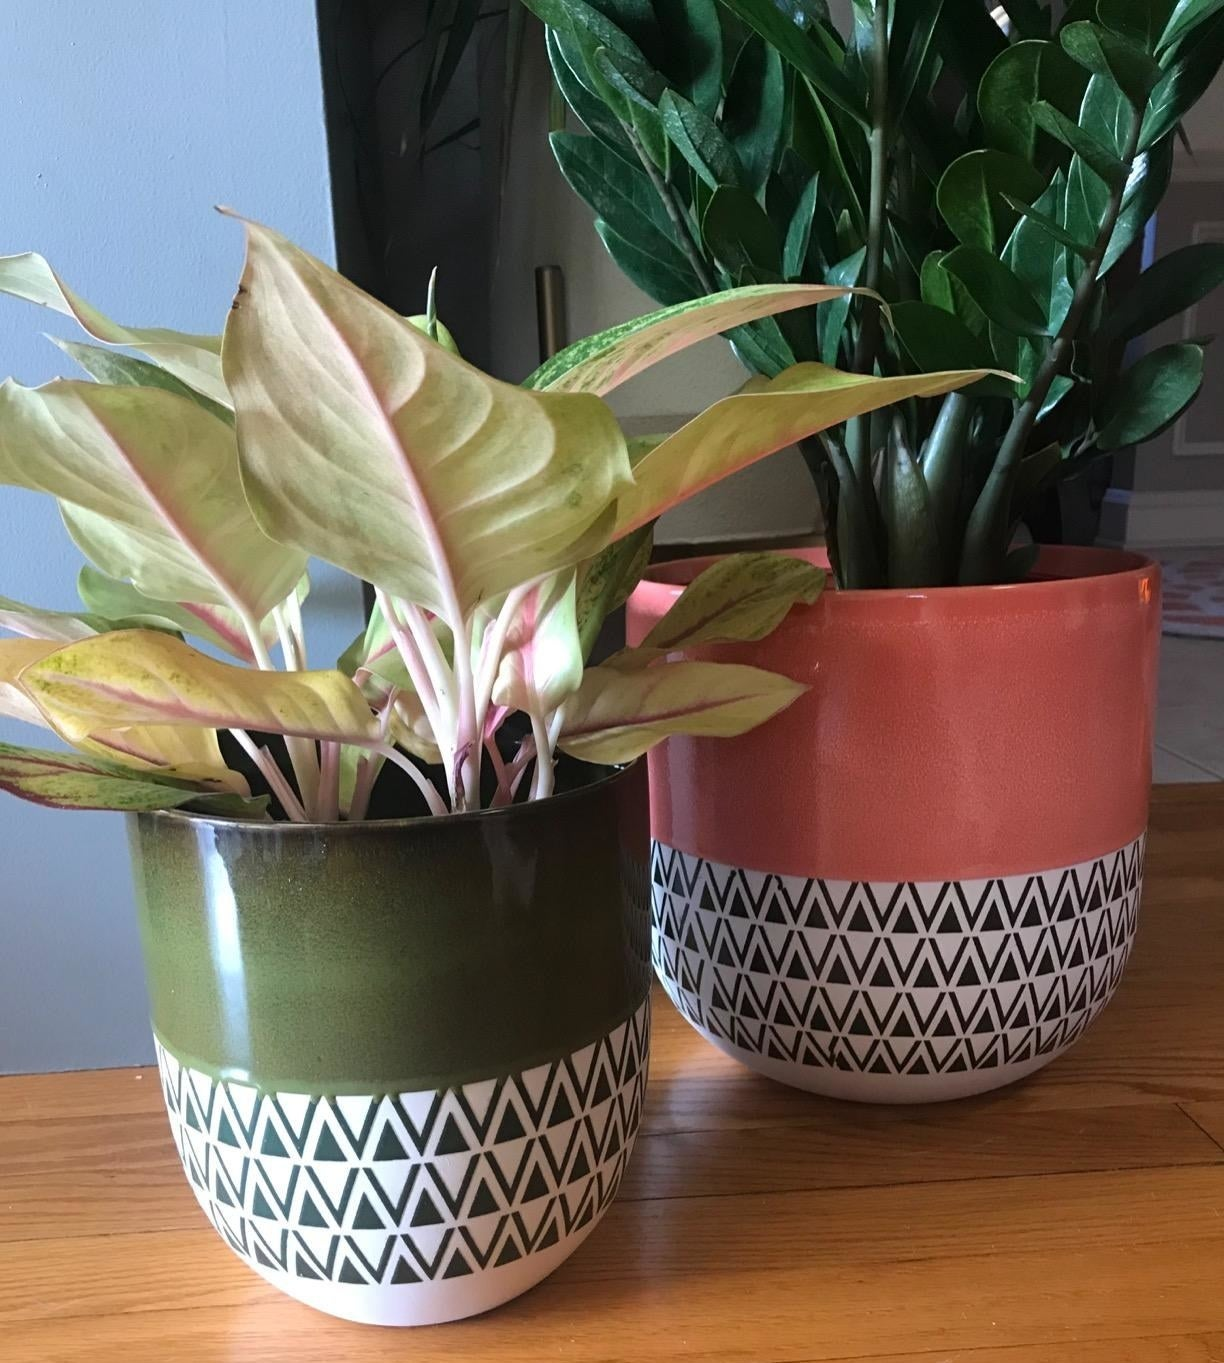 Two two-toned planters, one in moss and one in coral